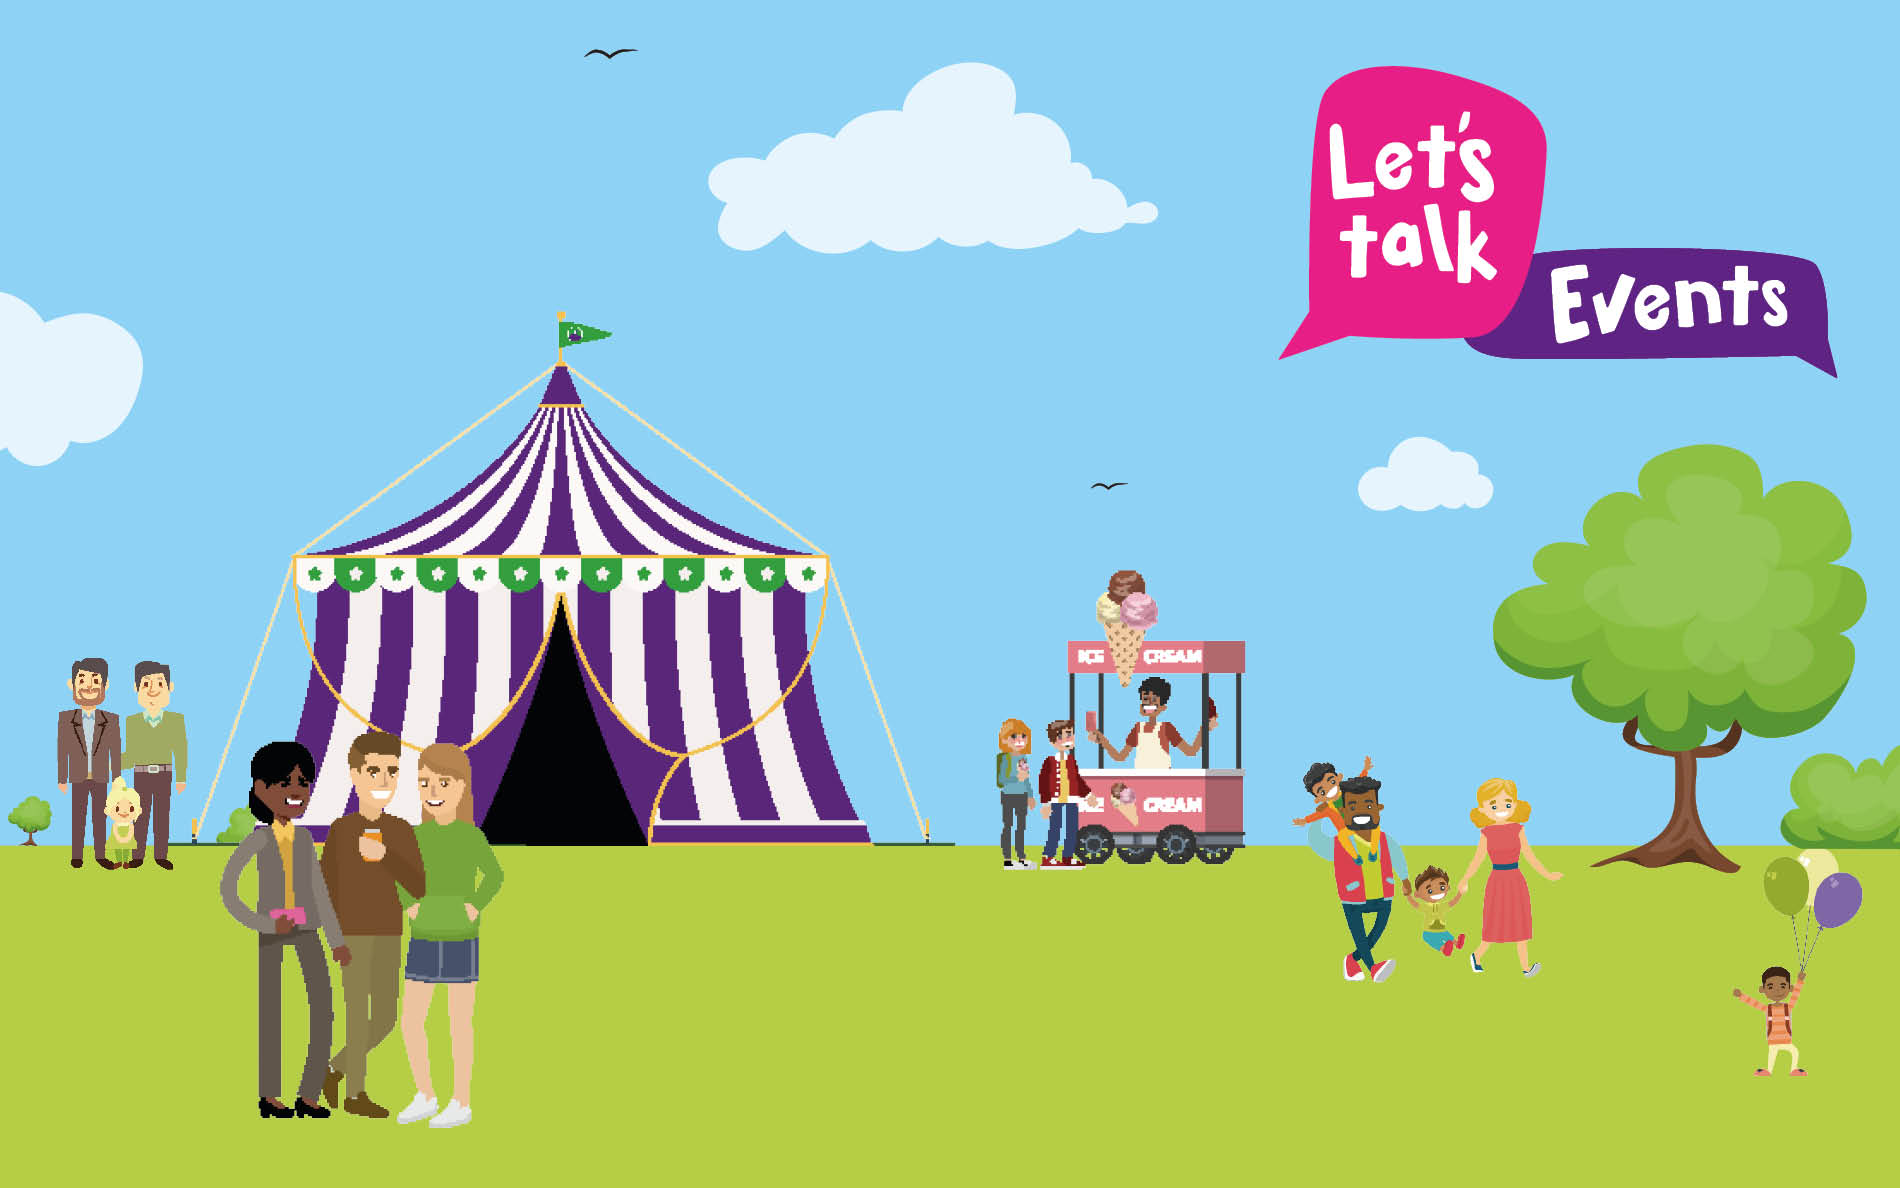 Let's Talk Events web graphic